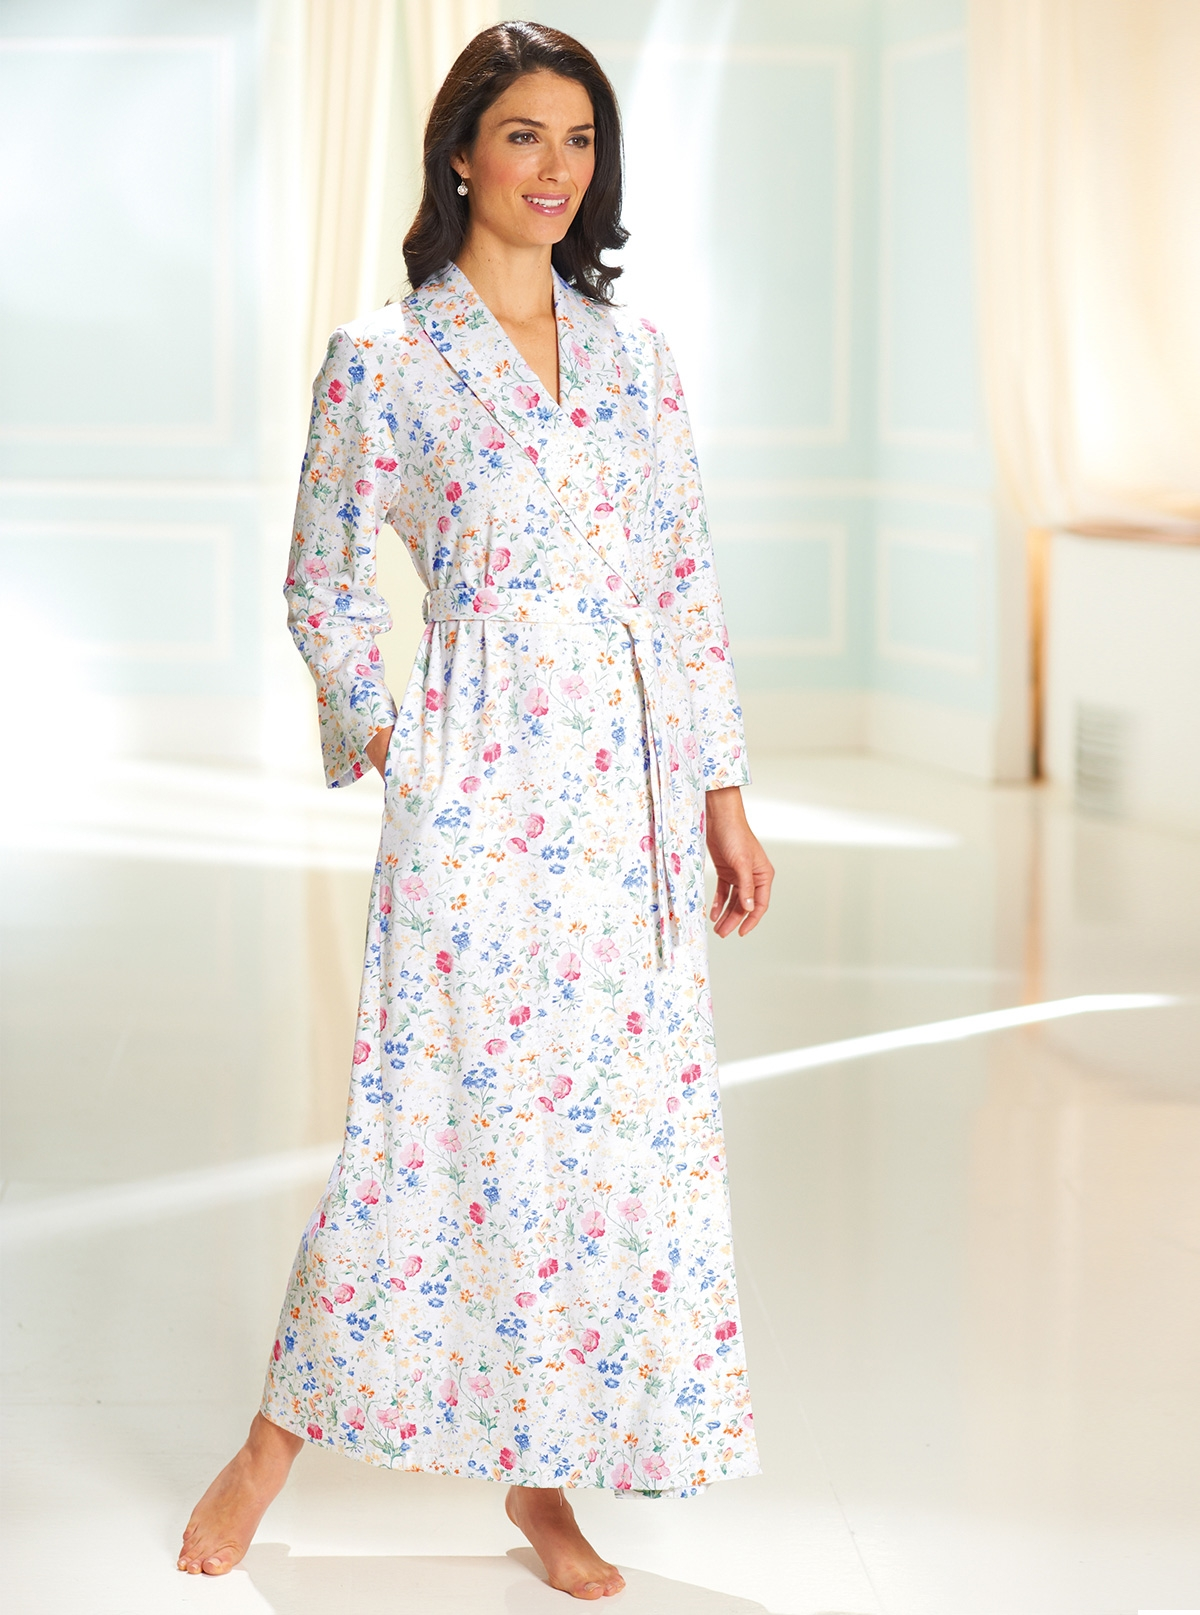 Summer Cotton Floral Dressing Gown Size S And To Have A Long Life. Sleepwear & Robes Women's Clothing